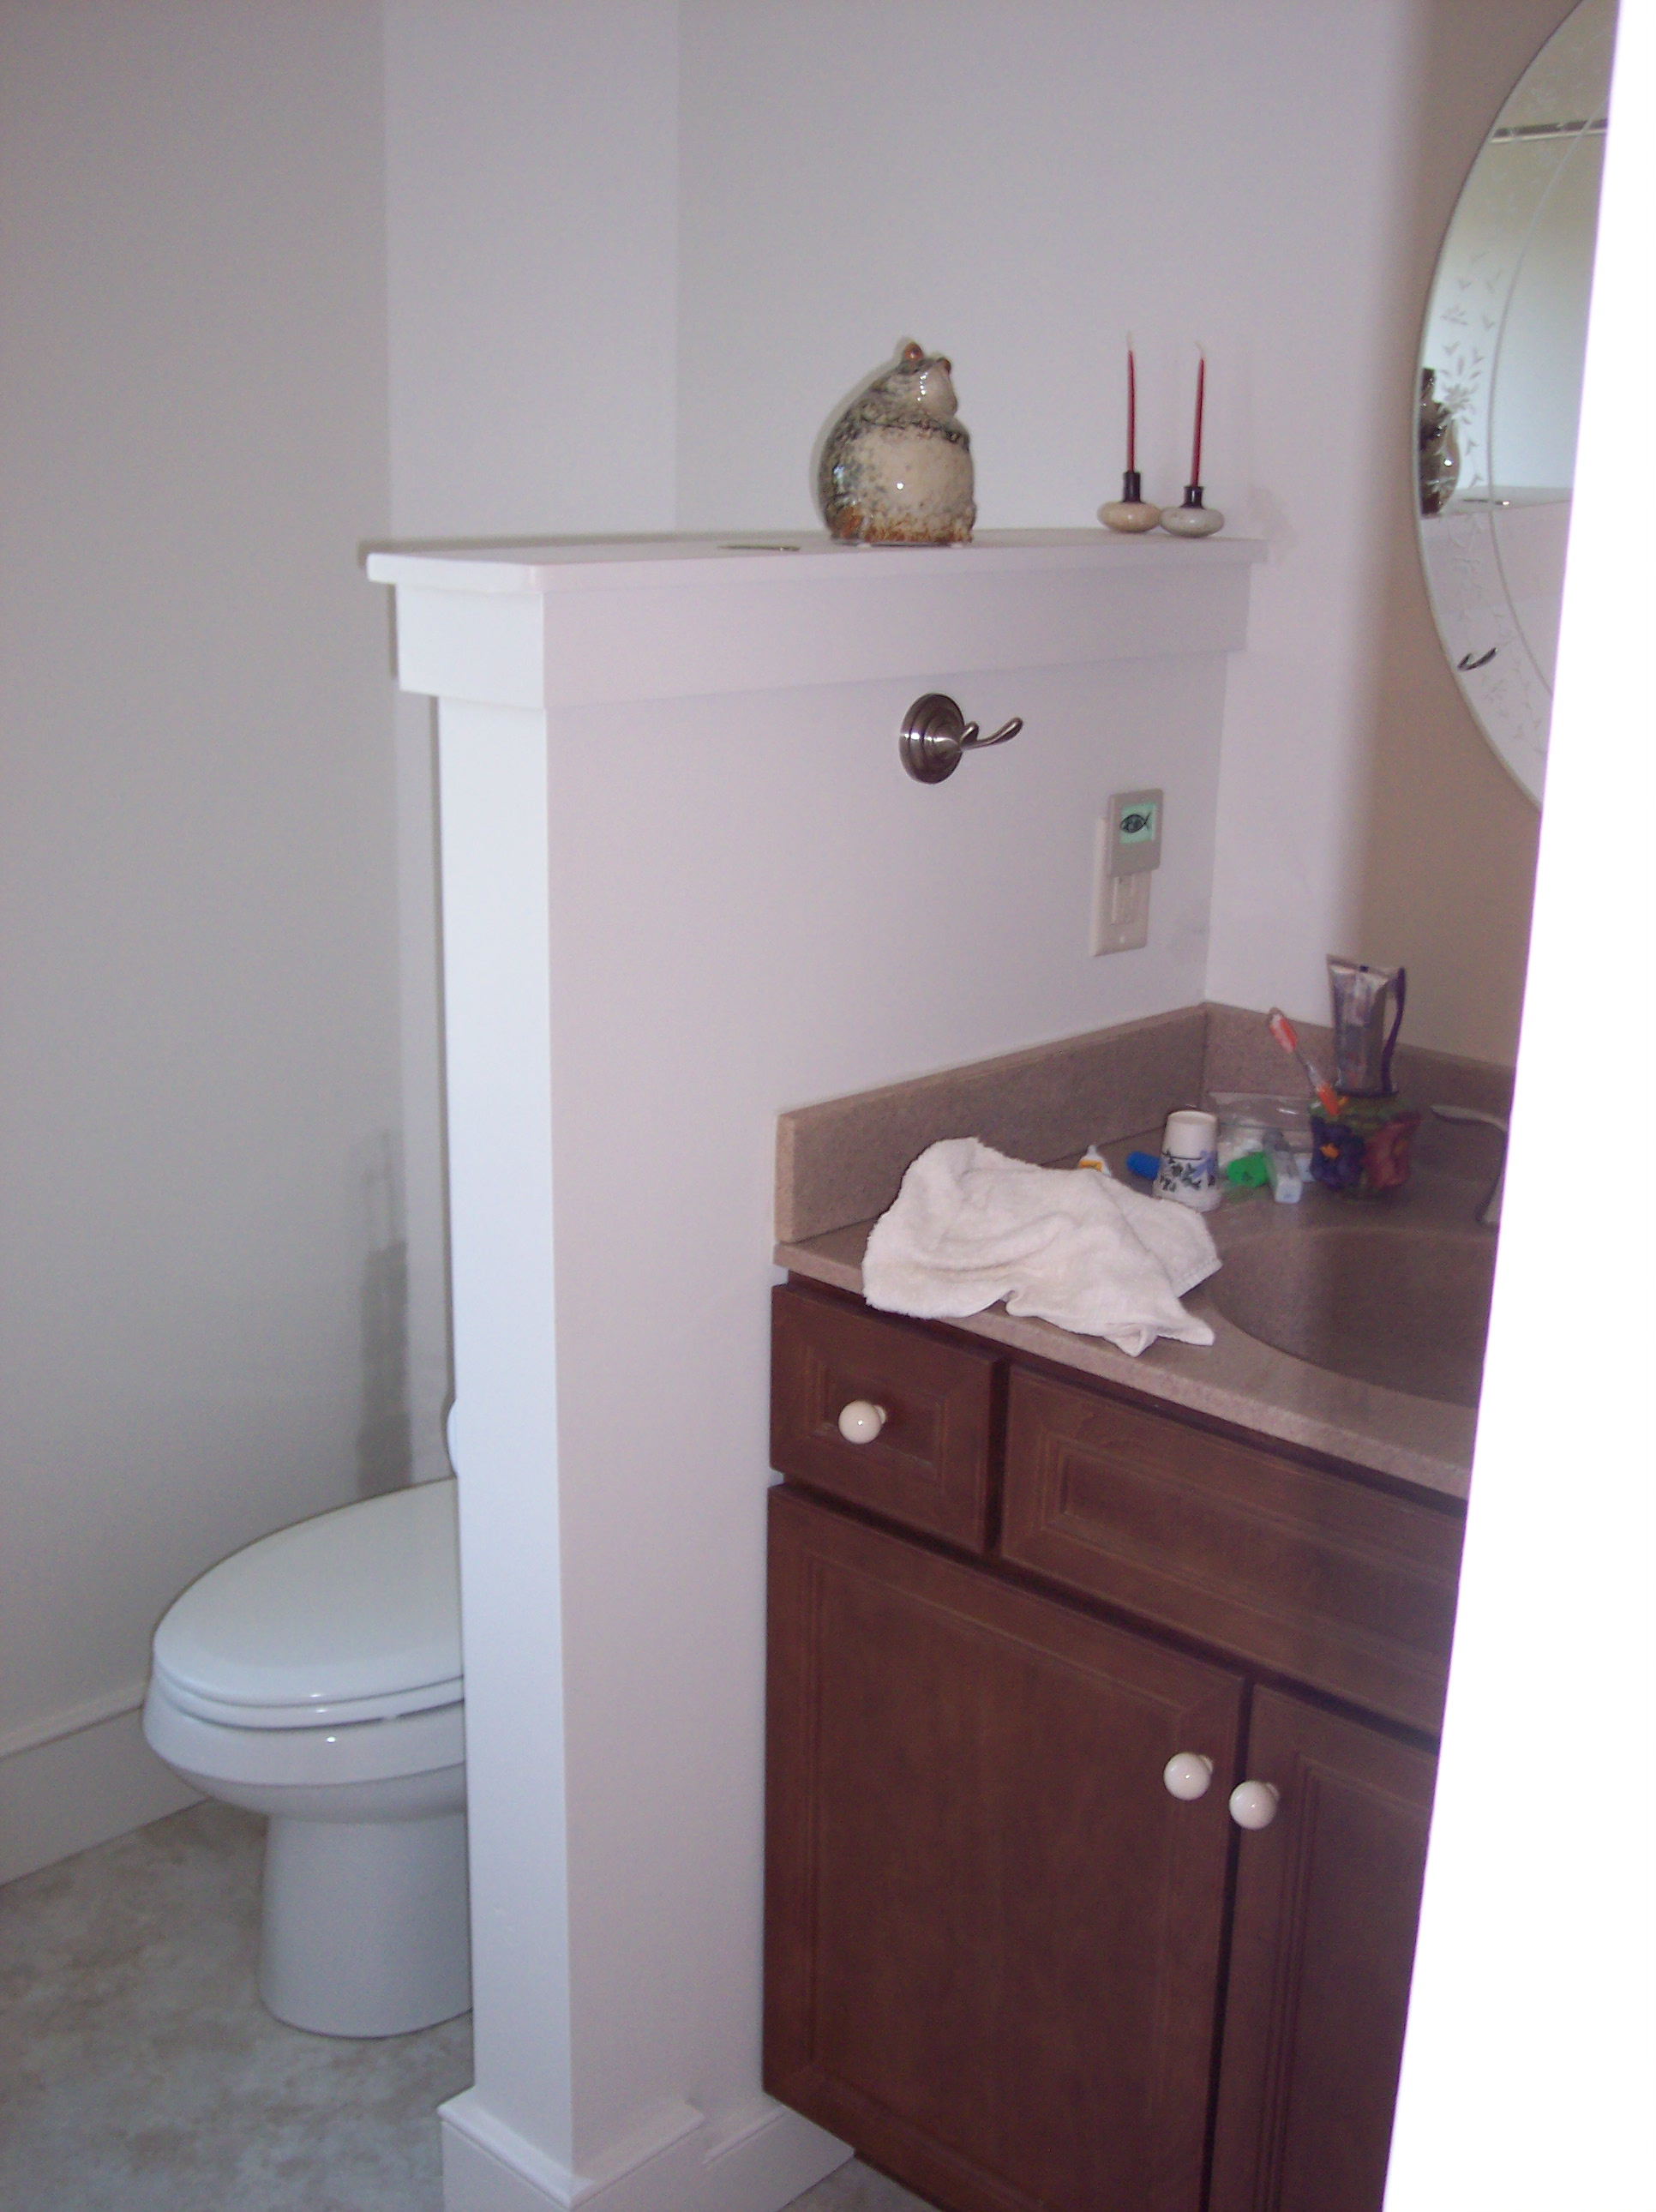 Remodeling ideas for small bathrooms lancaster pa for Small bath remodel ideas